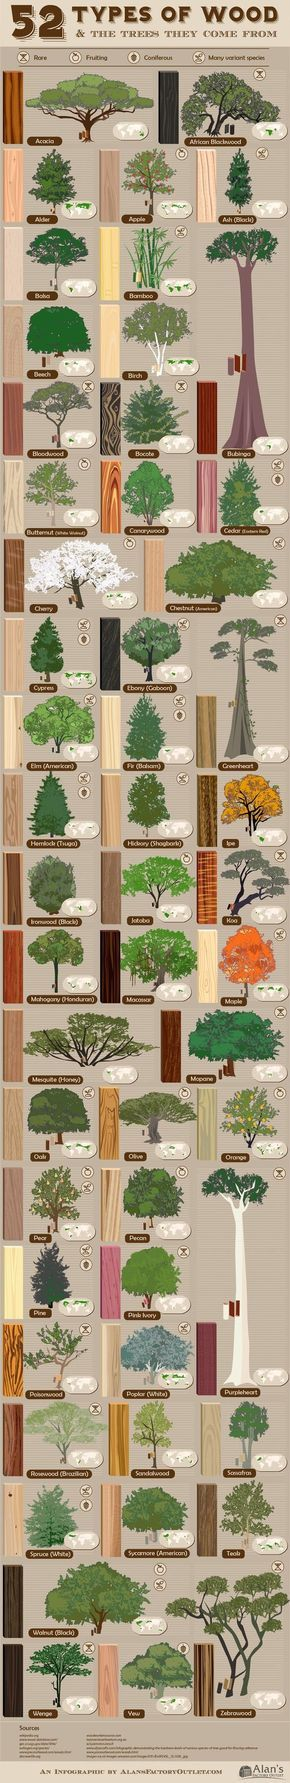 Familiarity with #tree types and #wood grain is one of the most important skills of #woodworking.: